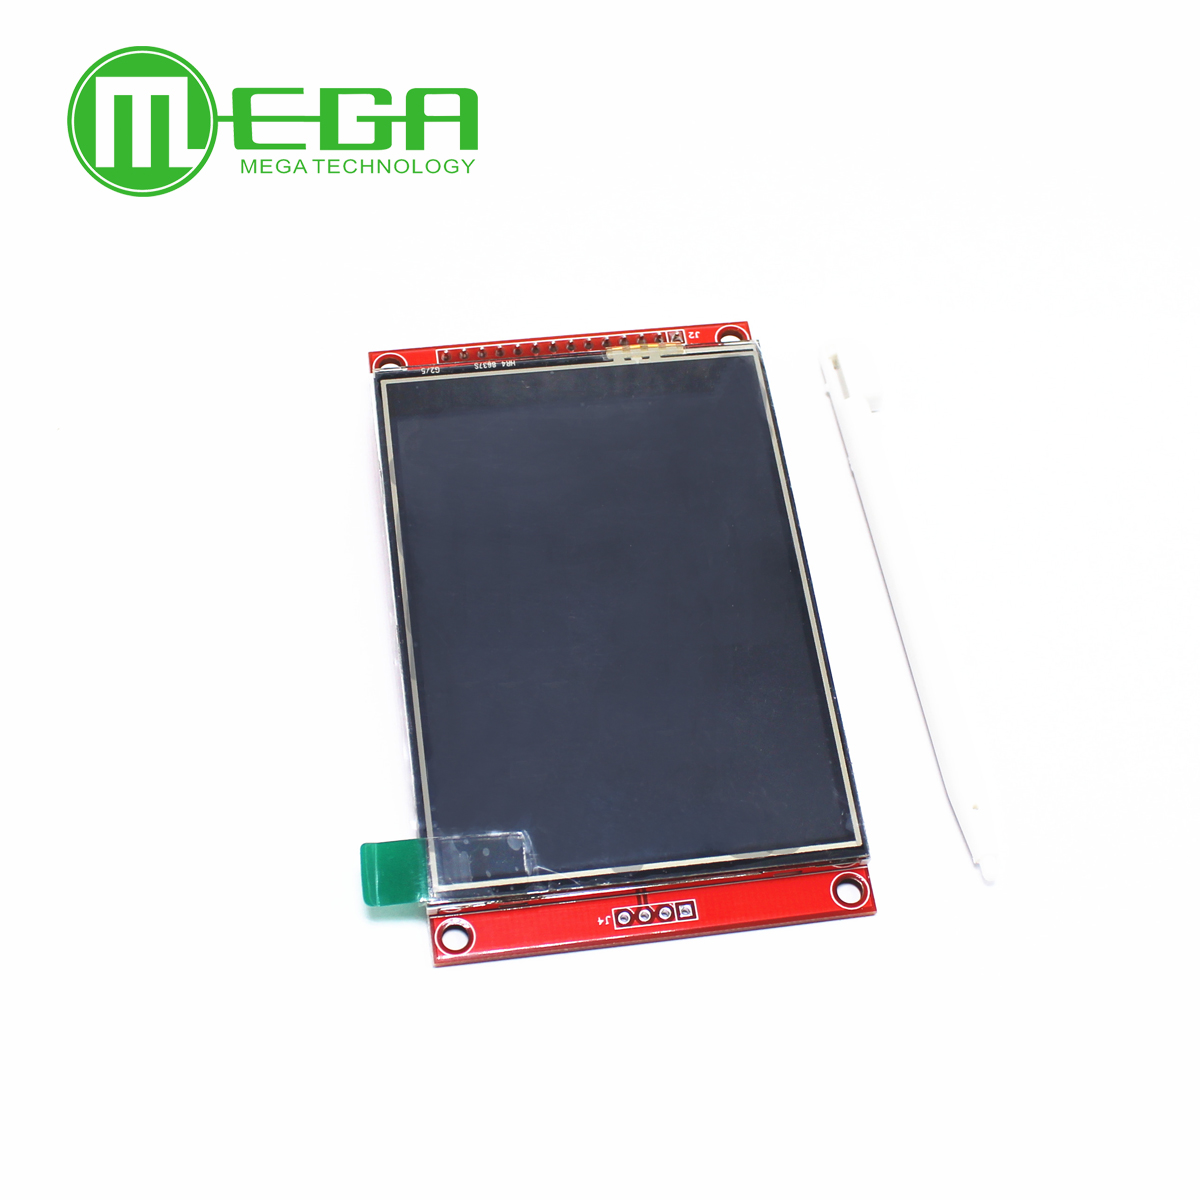 1pcs 3.2 Inch 320*240 SPI Serial TFT LCD Module Display Screen With Touch Panel Driver IC ILI9341 For Arduino MCU